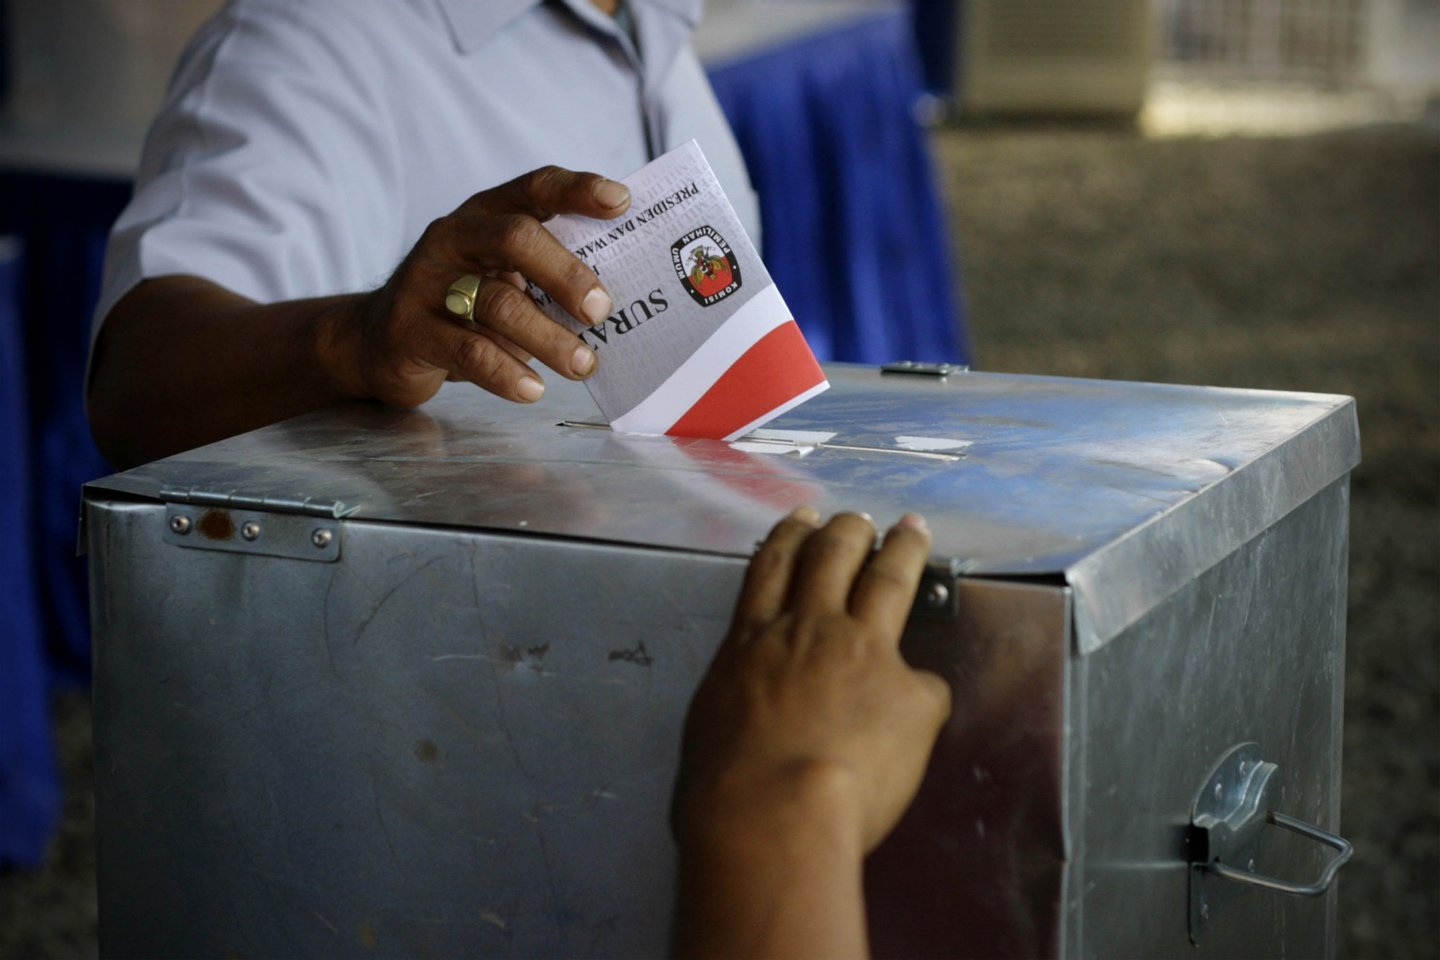 JAKARTA, INDONESIA - JULY 08: A voter casts his ballot as Indonesians go to the polls to vote in Indonesia's Presidential Elections on July 8, 2009 in Cikeas, Indonesia. Indonesia's Presidential elections will elect the new President and Vice President of Indonesia for the 2009-2014 period.  Incumbent Yudhoyono is expected to win this election and his second term. (Photo by Ulet Ifansasti/Getty Images)